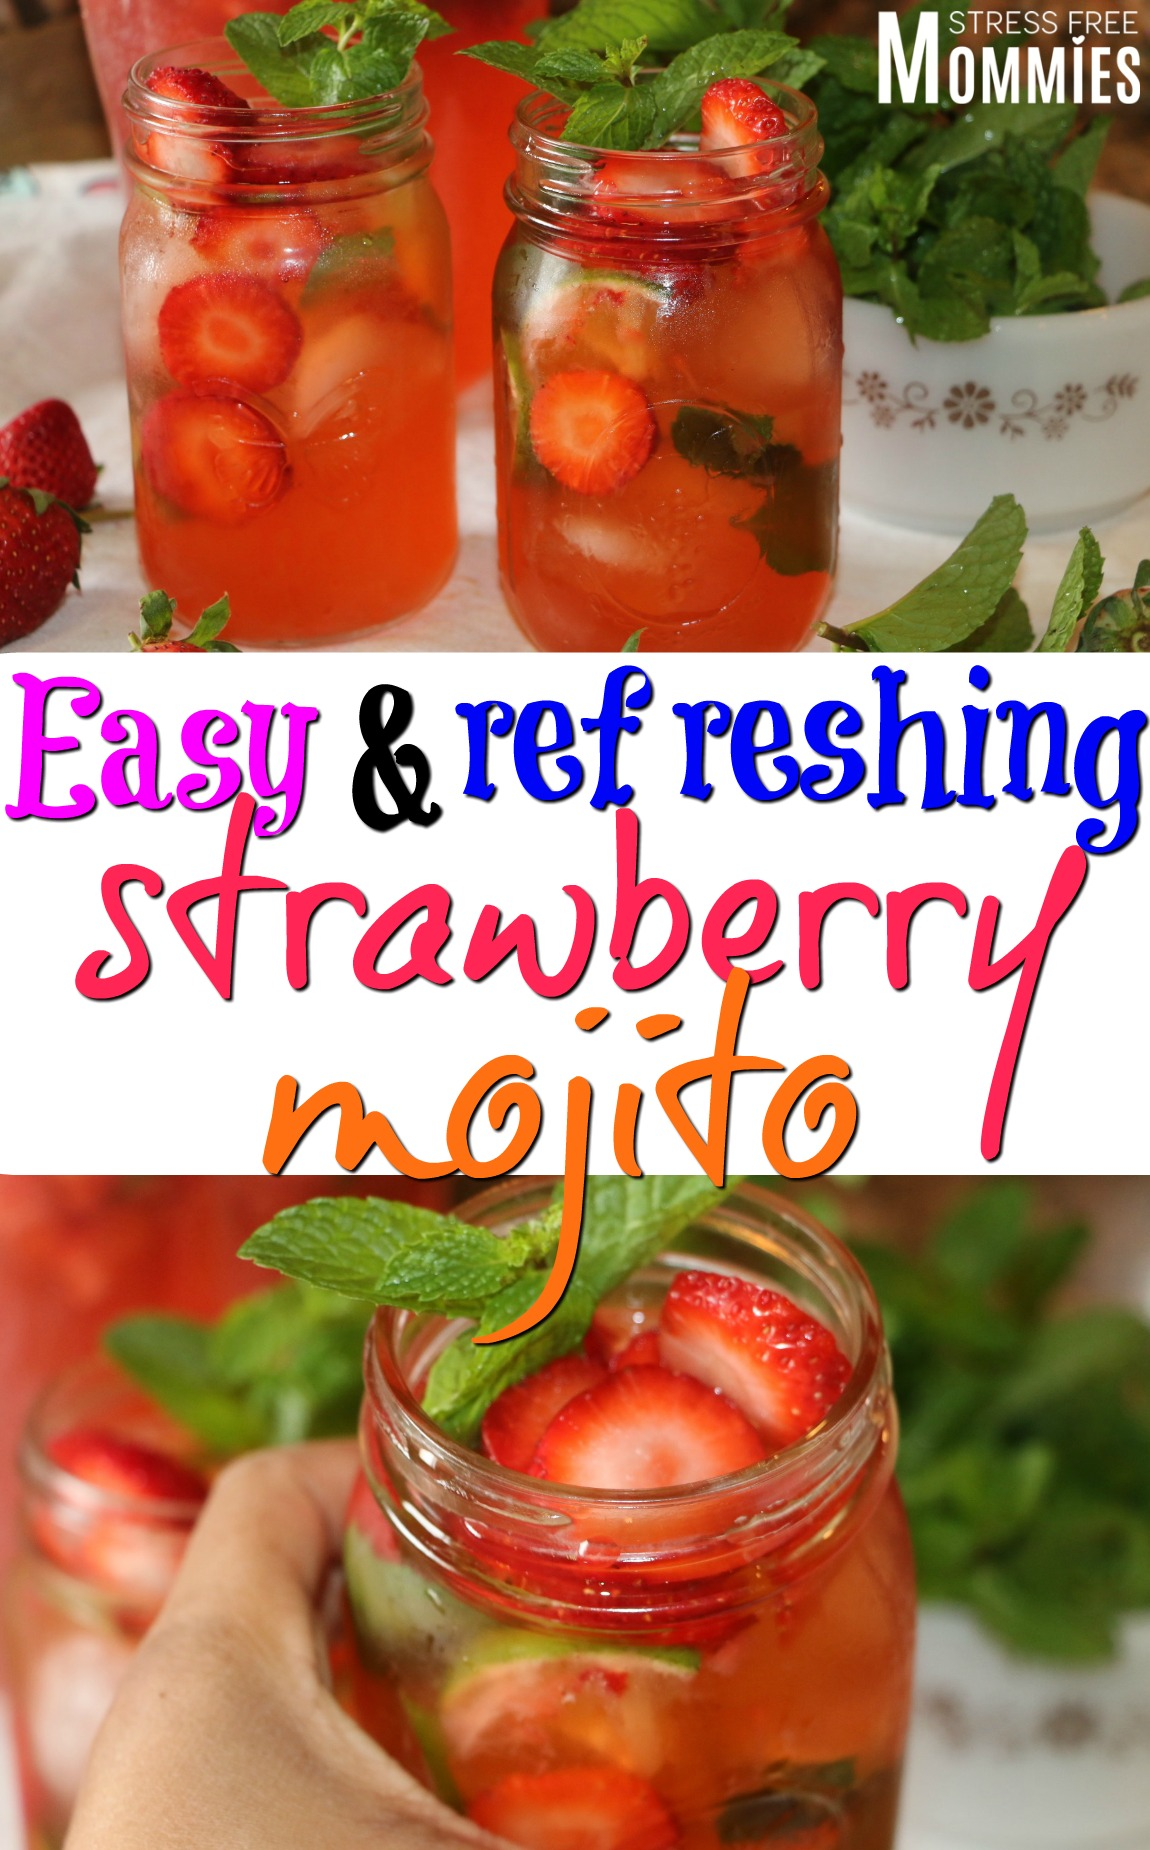 Easy and refreshing strawberry mojito- The best strawberry mojito. Fresh strwaberries, mint leaves, lemon juices and a touch of sprite to sparkle your life! #drinks #mojitos